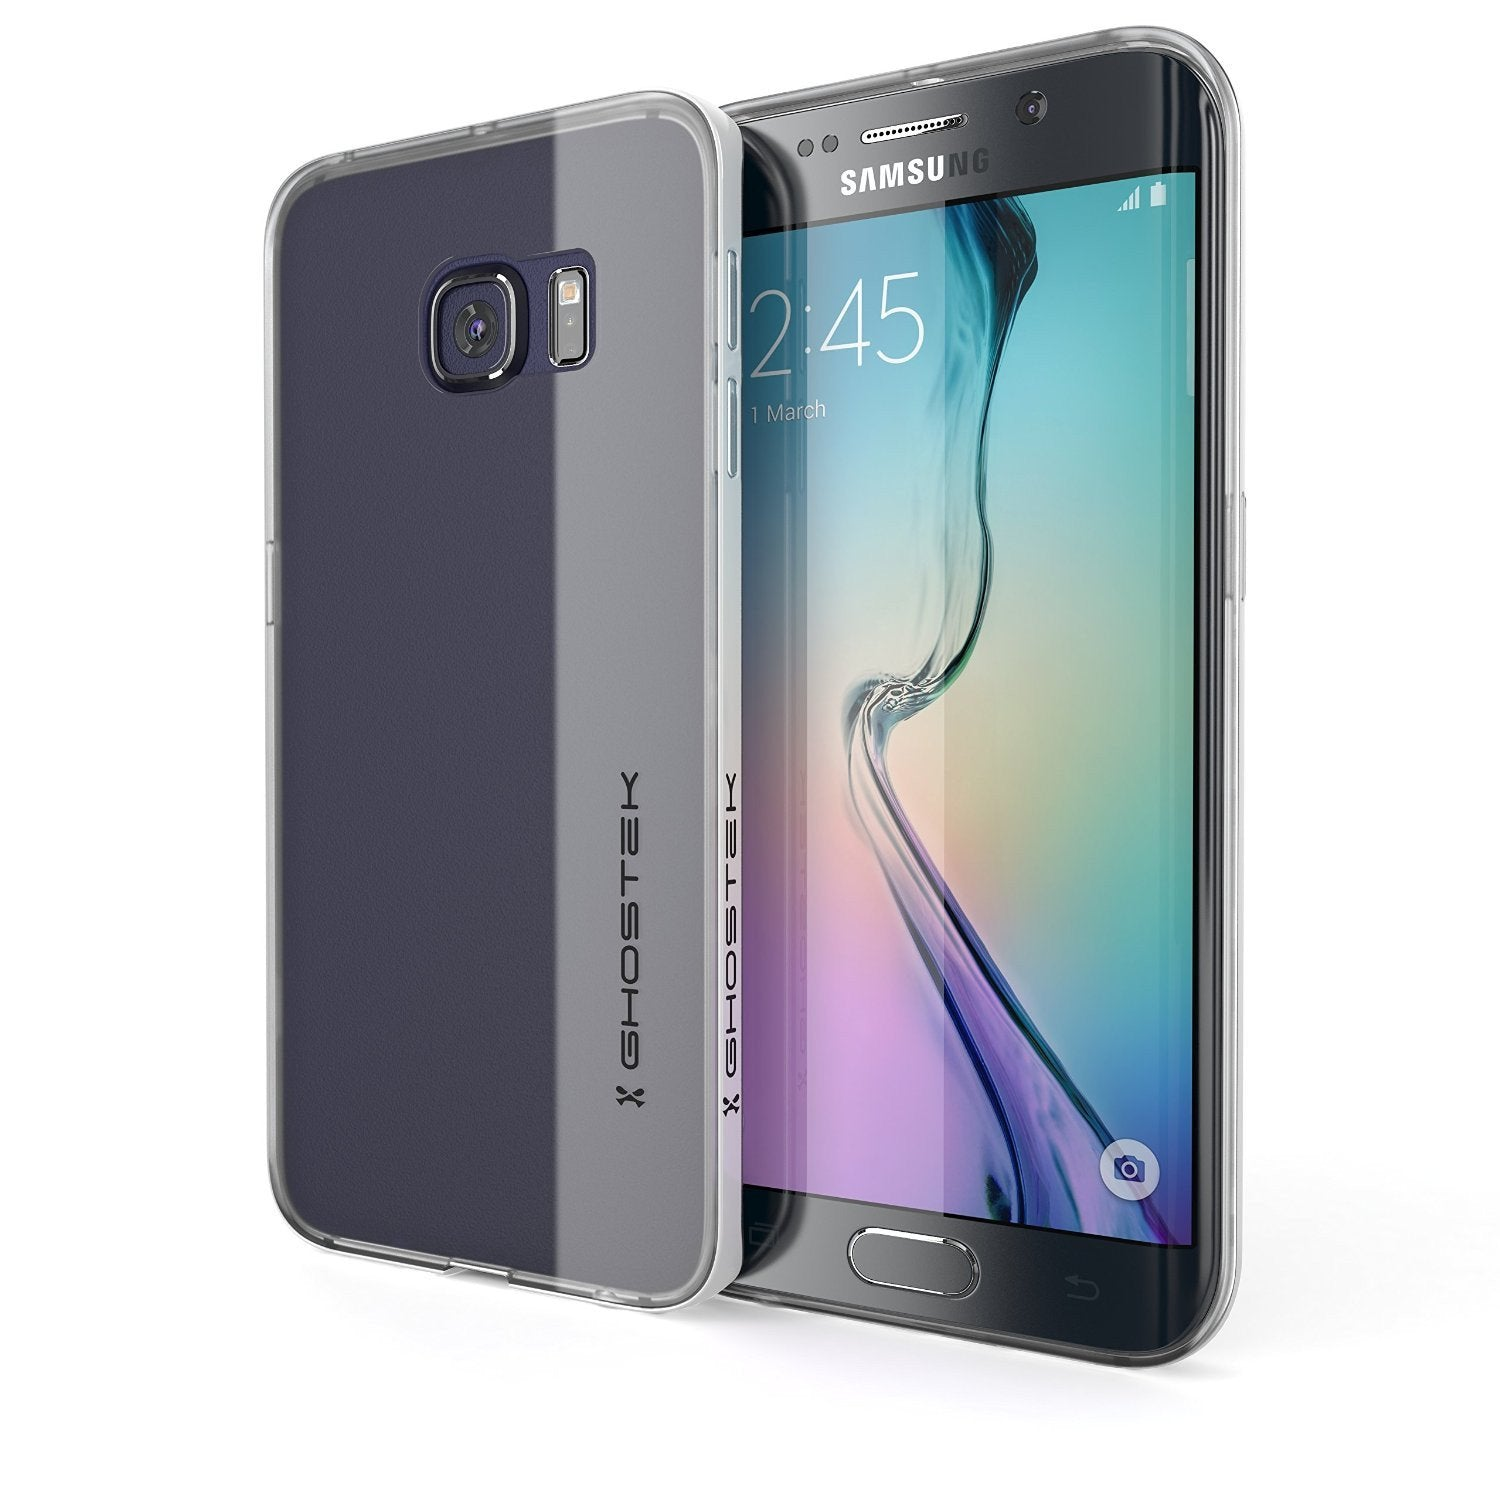 Galaxy S6 Edge Case, Ghostek White Cloak Series Slim Hybrid Impact Armor | Lifetime Warranty